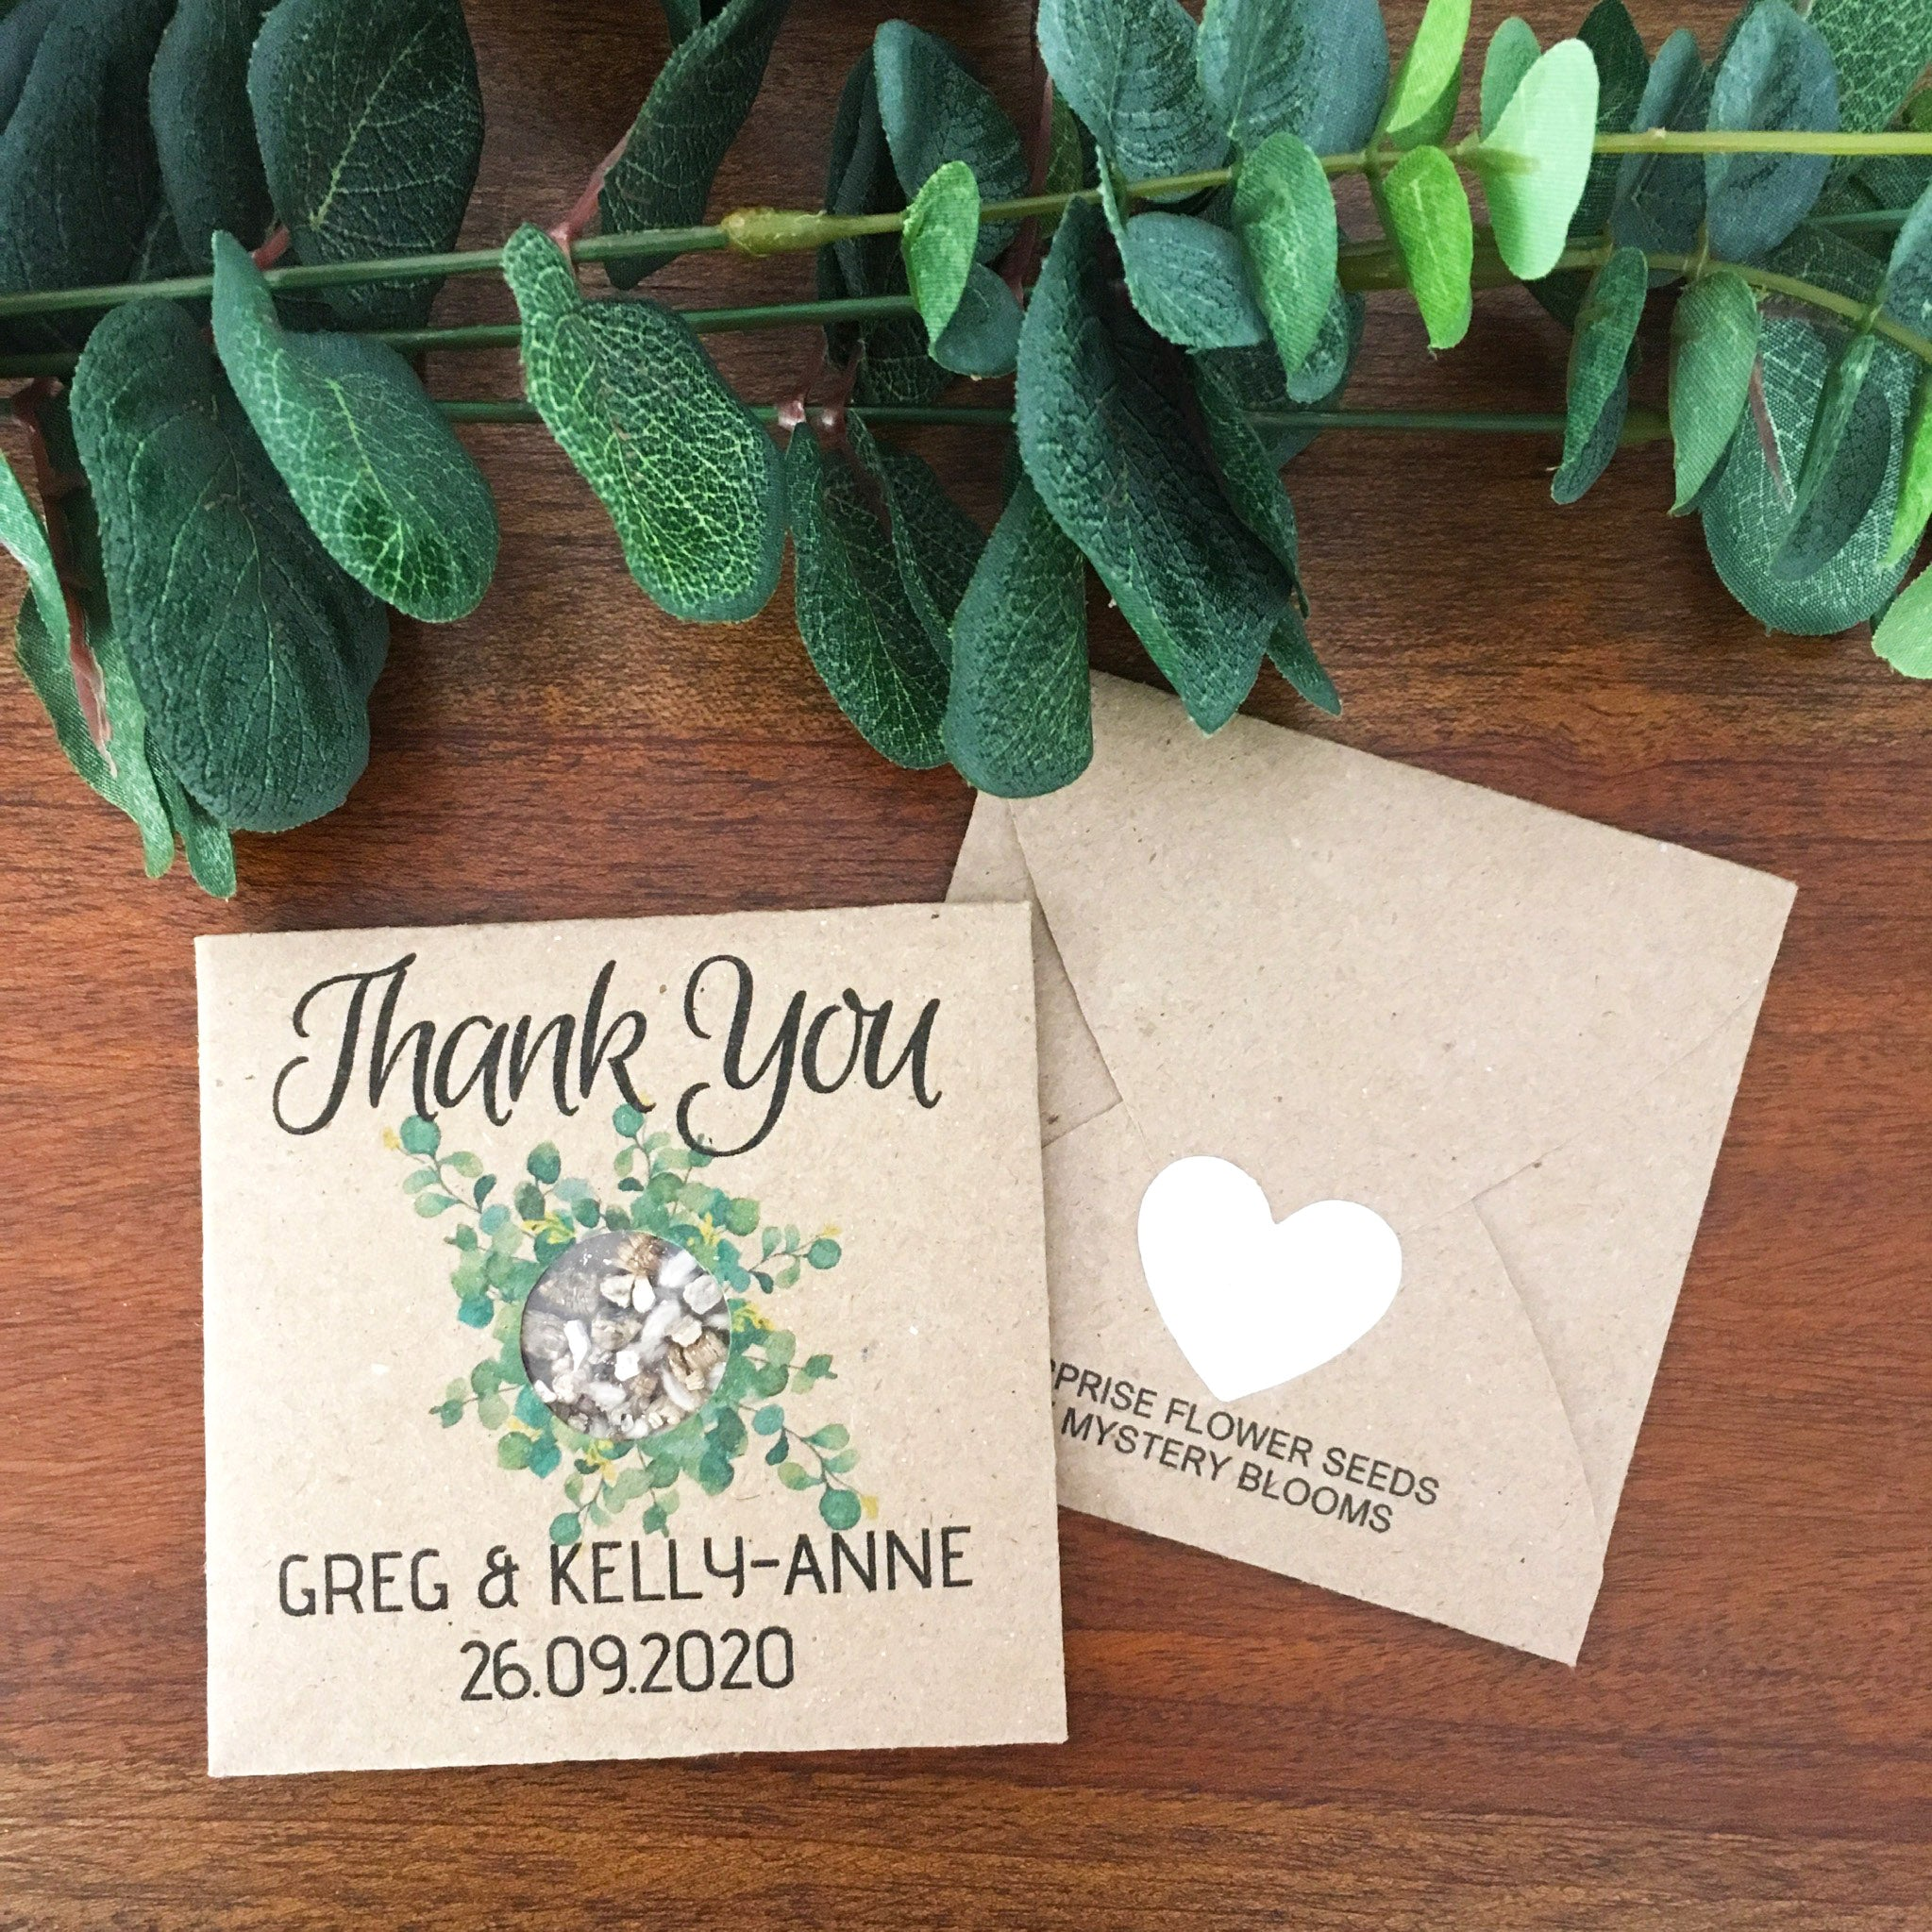 Greg & Kelly-Anne Personalised seed favour